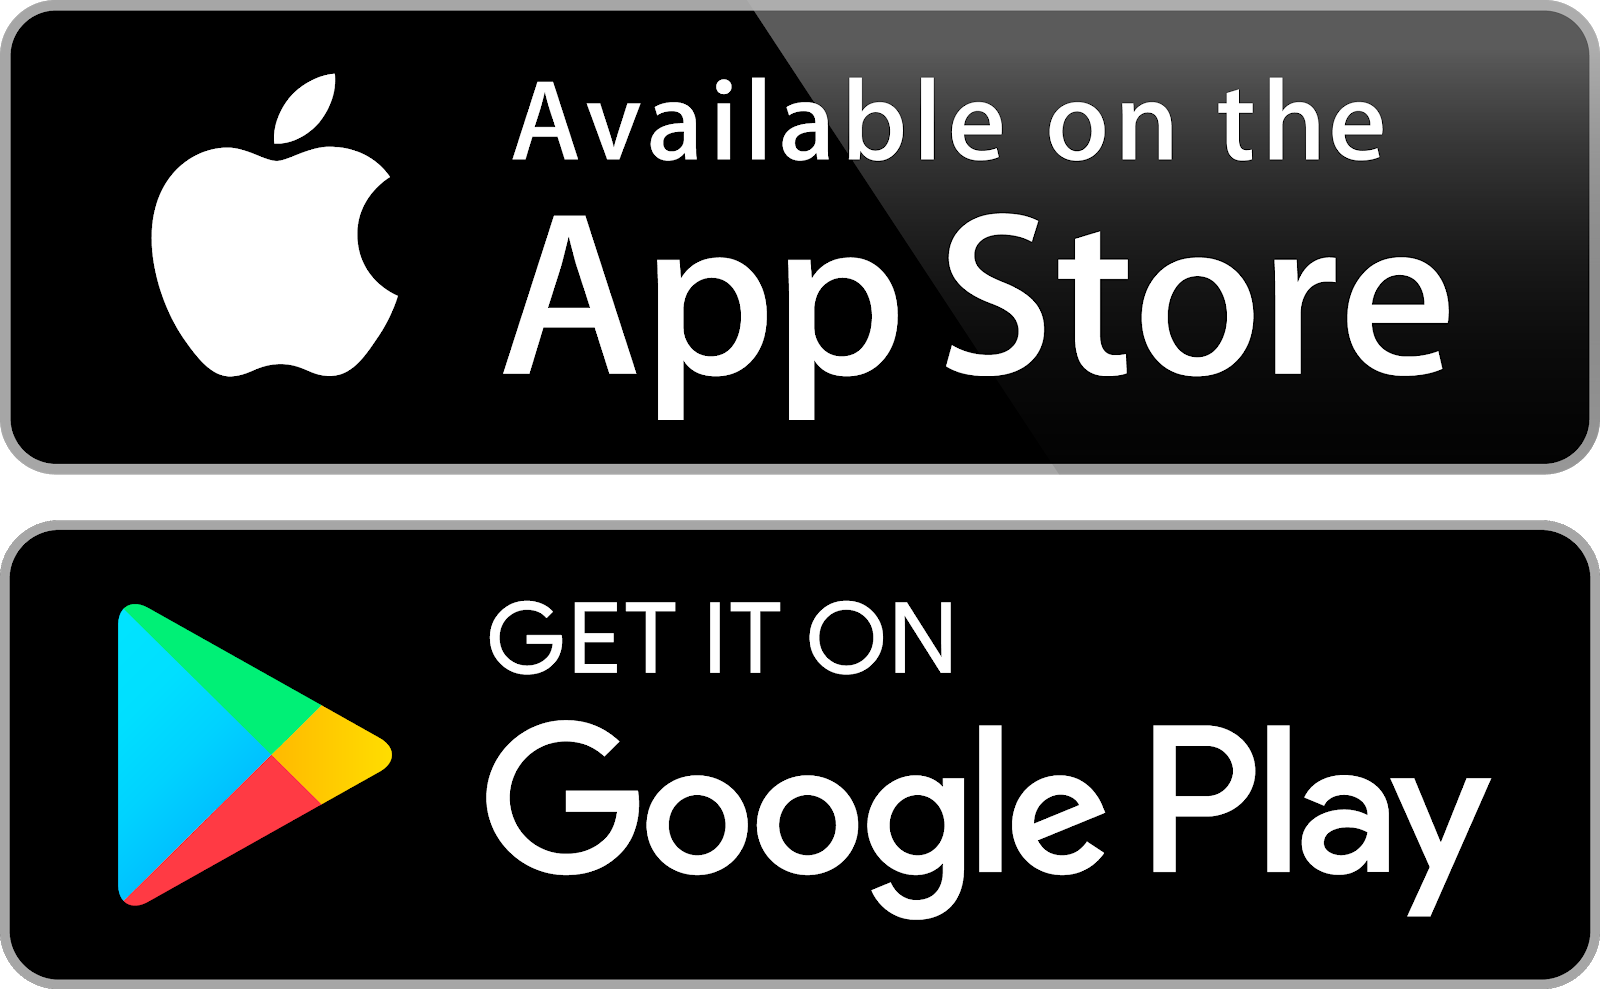 download icons app store google play svg eps png psd ai.